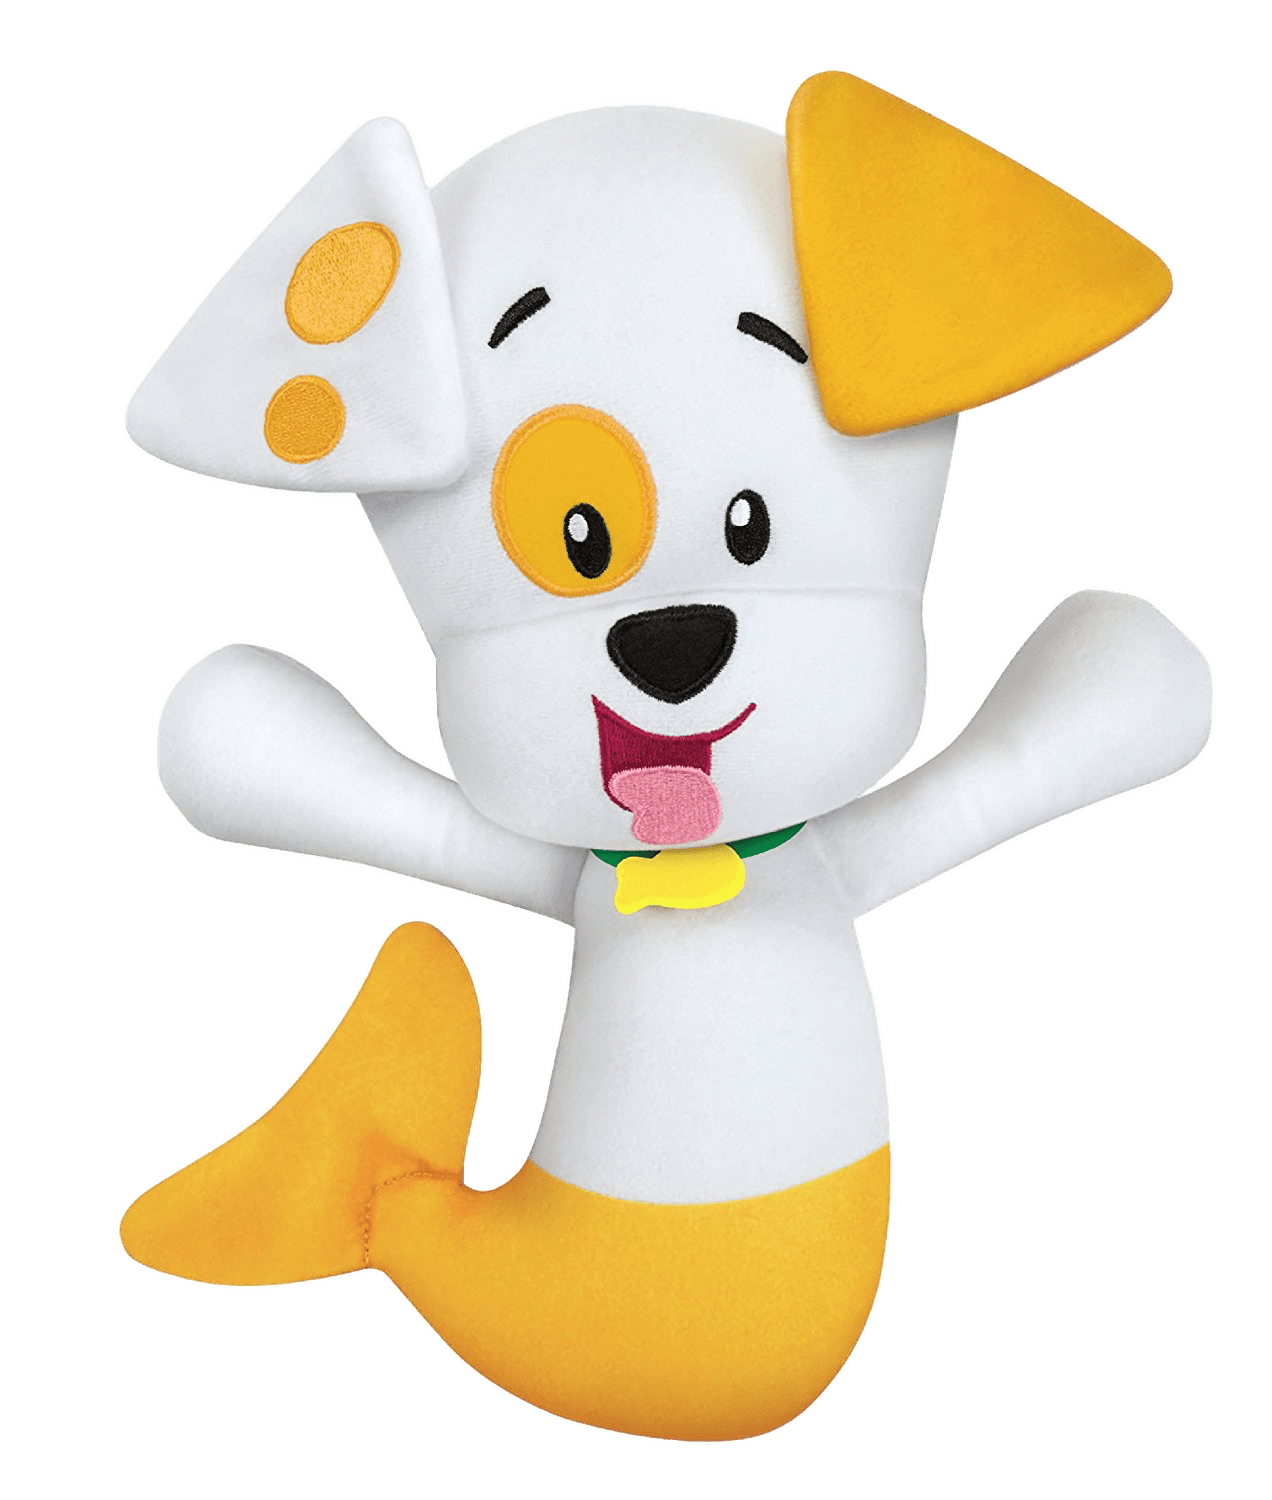 Bubble puppy png. Paws up transparent stickpng